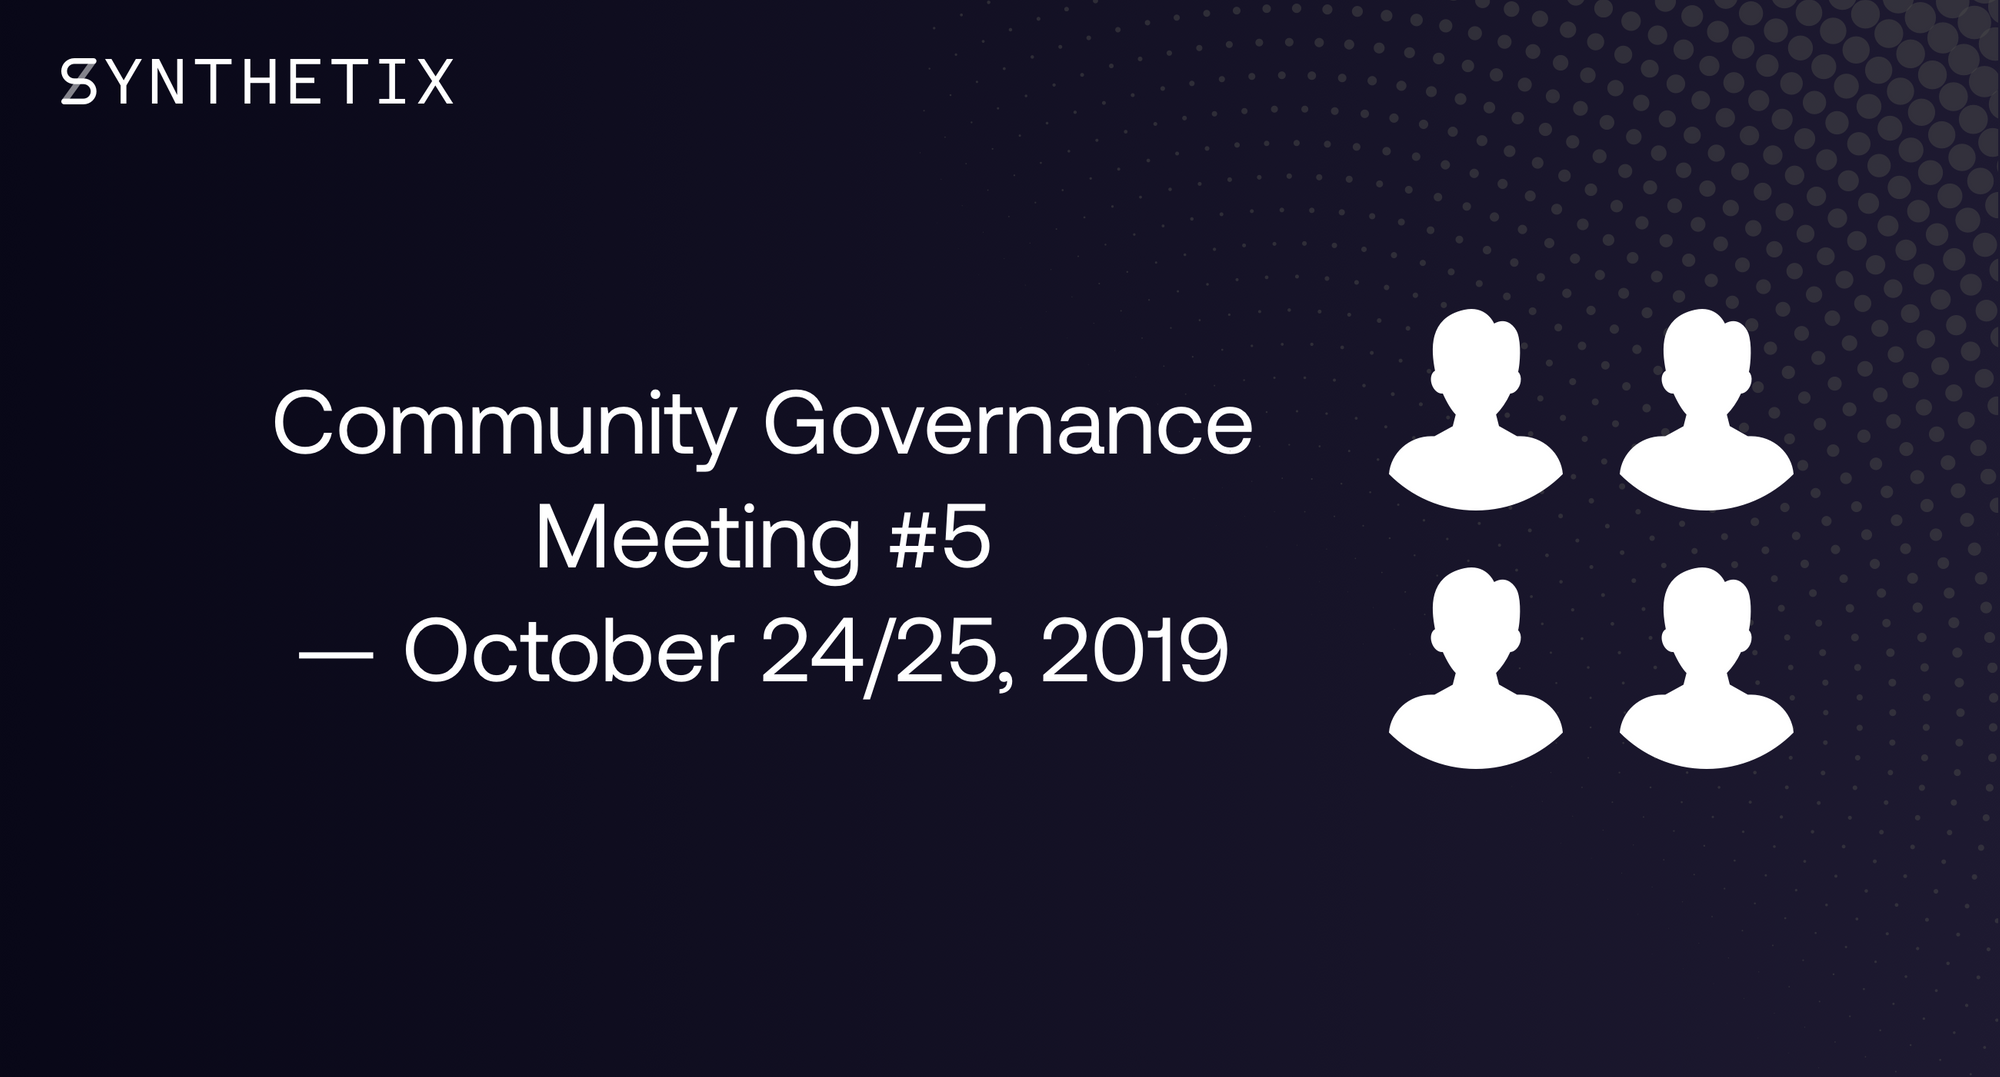 Join us for the next community governance call on October 24/25!